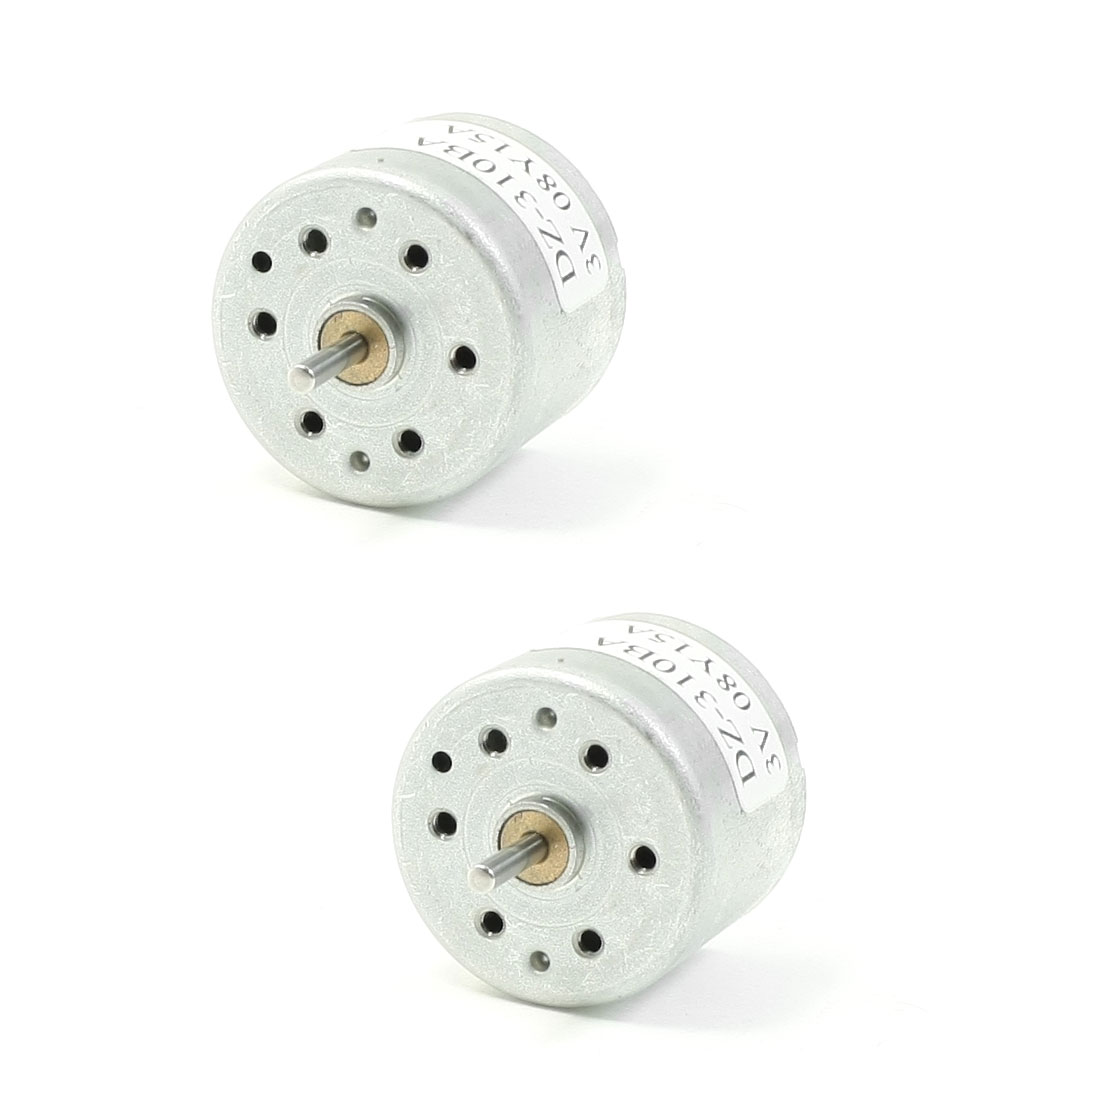 2 Pcs DZ-310BA 3V DC 1800RPM Mini Motor for DVD CD Repair USB Fans